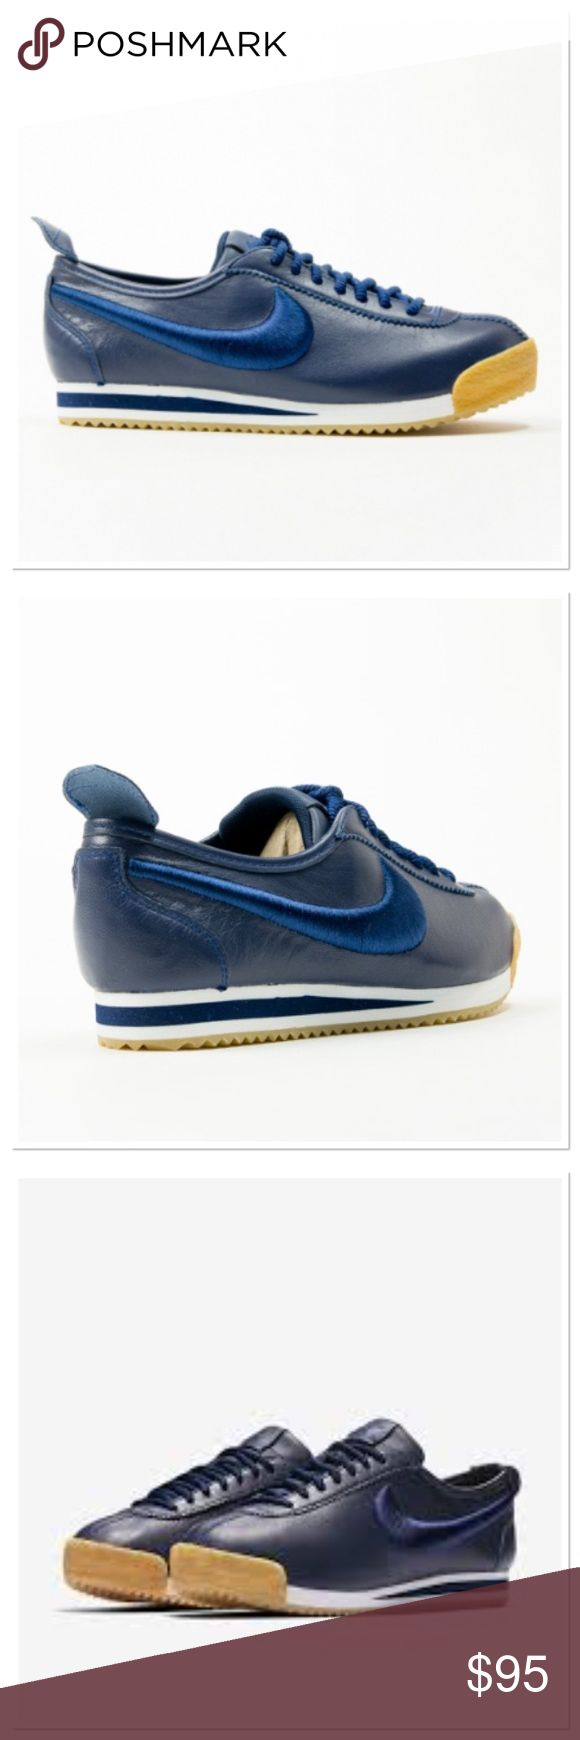 NWOB Nike Cortez 72' limited edition Those are stunning in person! Nike brought the 70's back with this ultra lightweight and comfortable limited edition Nike Cortez . Leather upper. The Nike swoosh is in the most beautiful royal blue stitching. True to size. Nike Shoes Sneakers